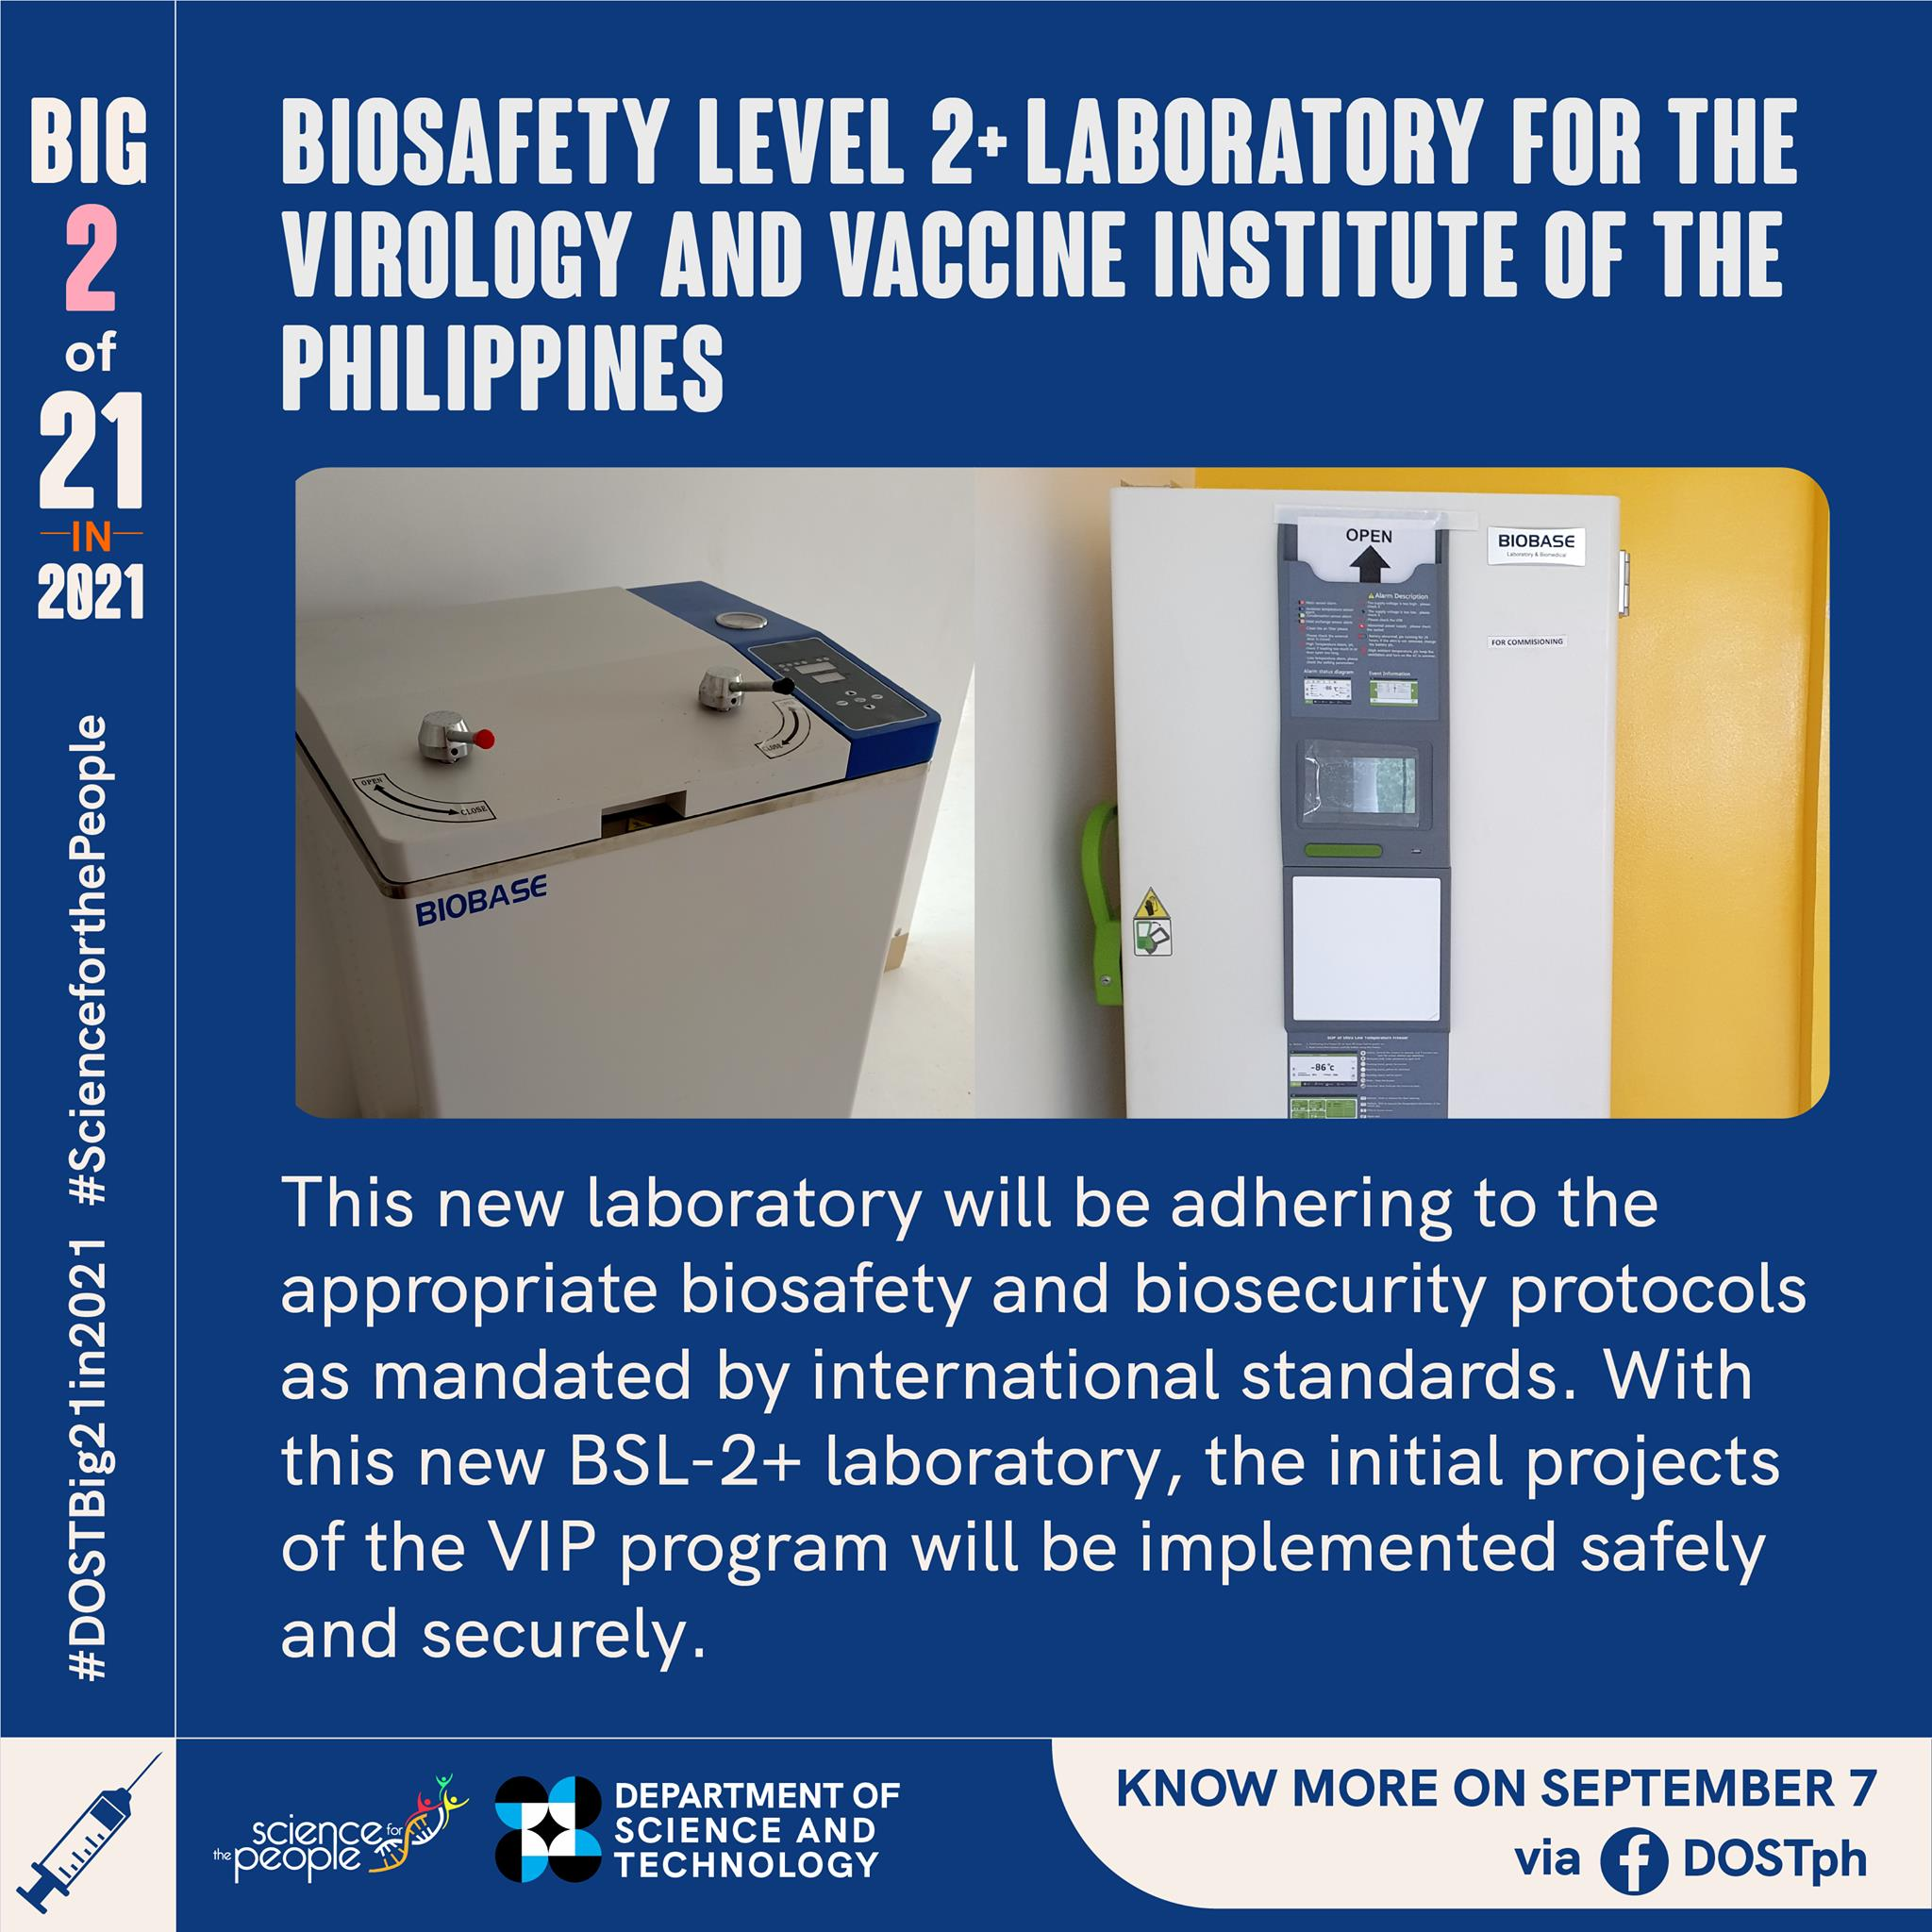 BSL-2+ Laboratory to be launched in preparation for the Virology and Vaccine Institute of the Philippines image